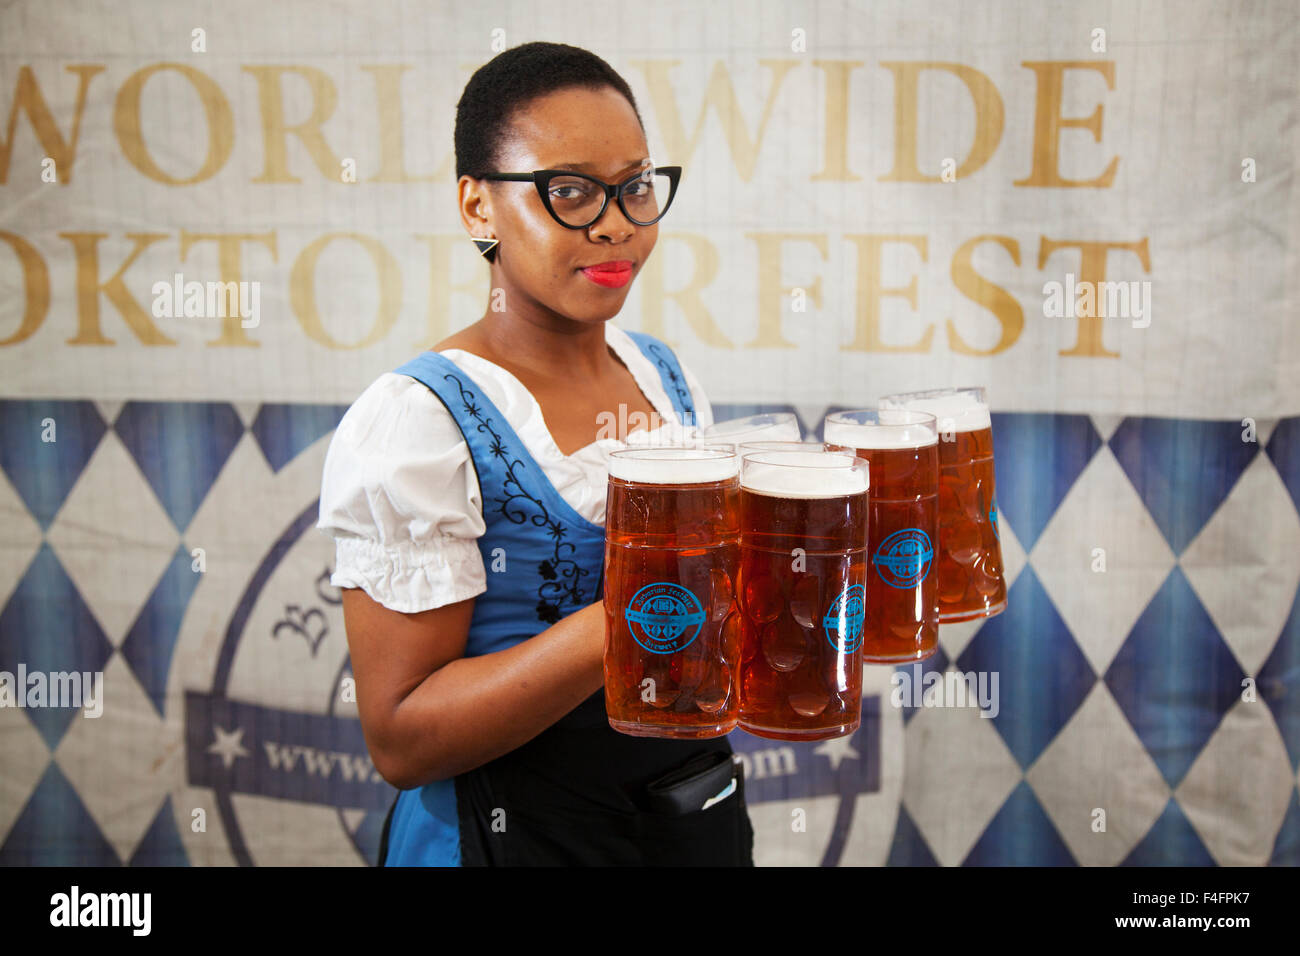 Liverpool, Merseyside, UK 17 Oct 2015. Ify from Birmingham serving beers at the Oktober Beer Festival at Exchange - Stock Image